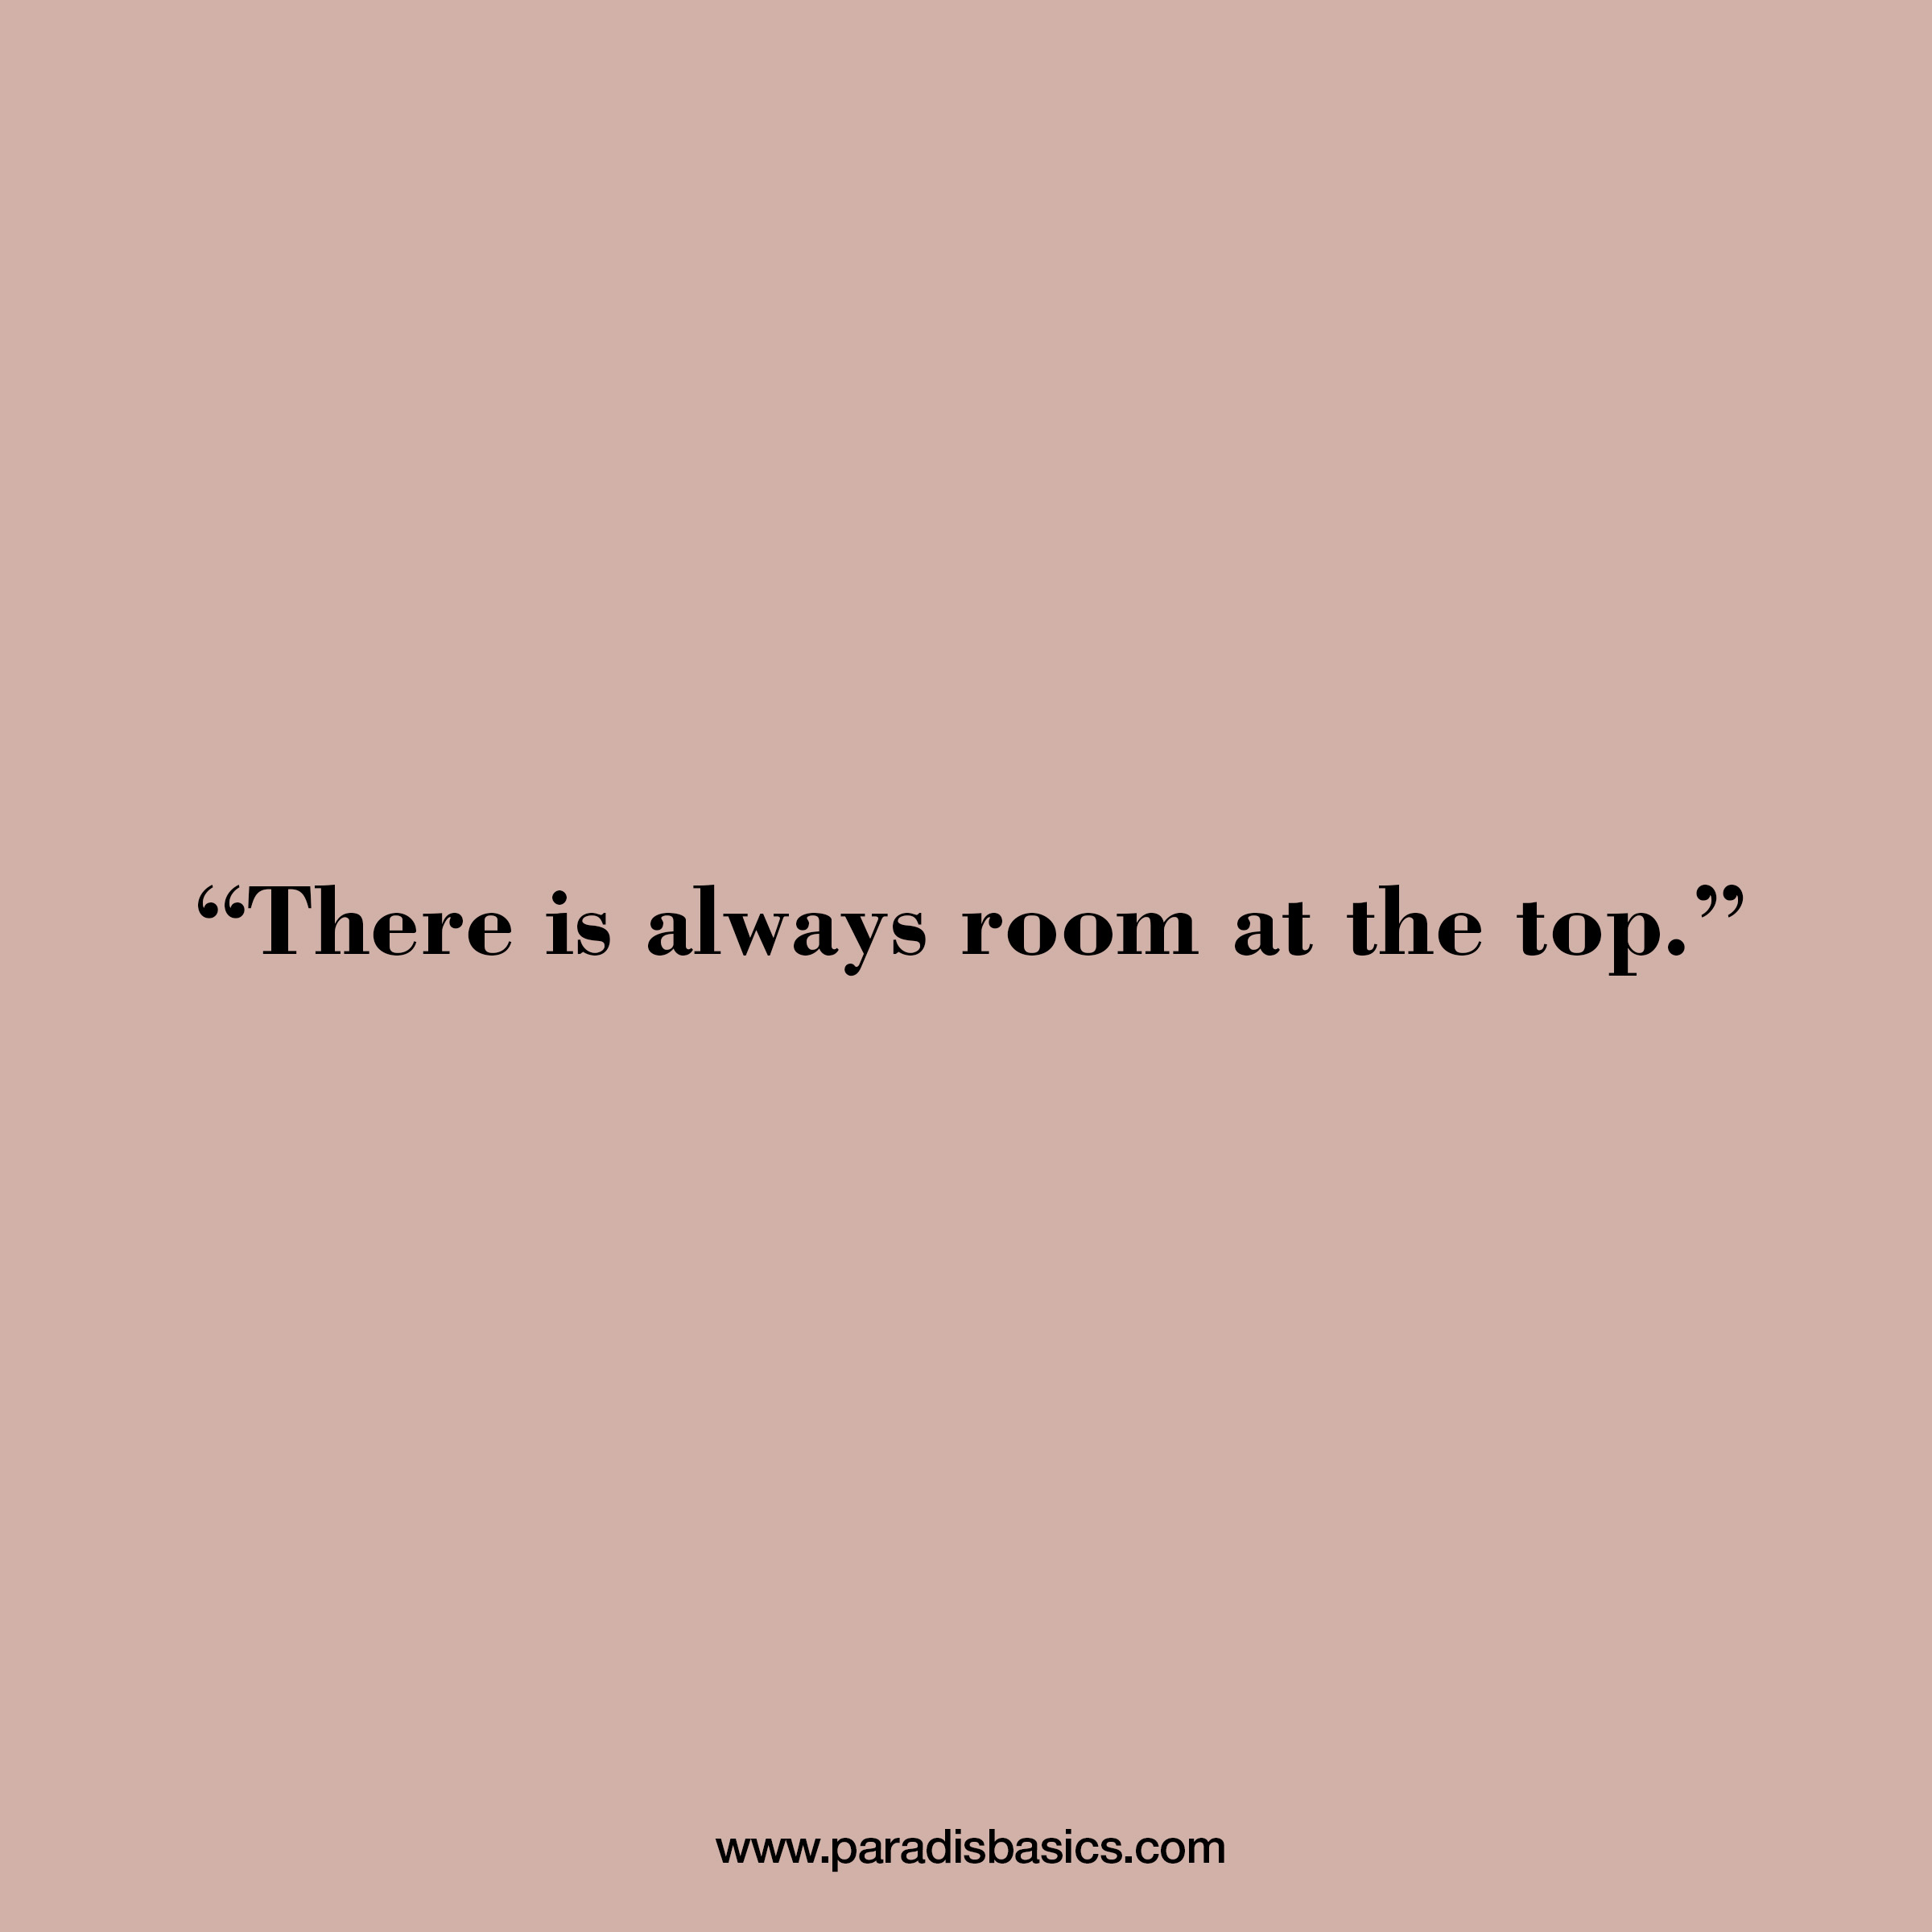 There is always room at the top